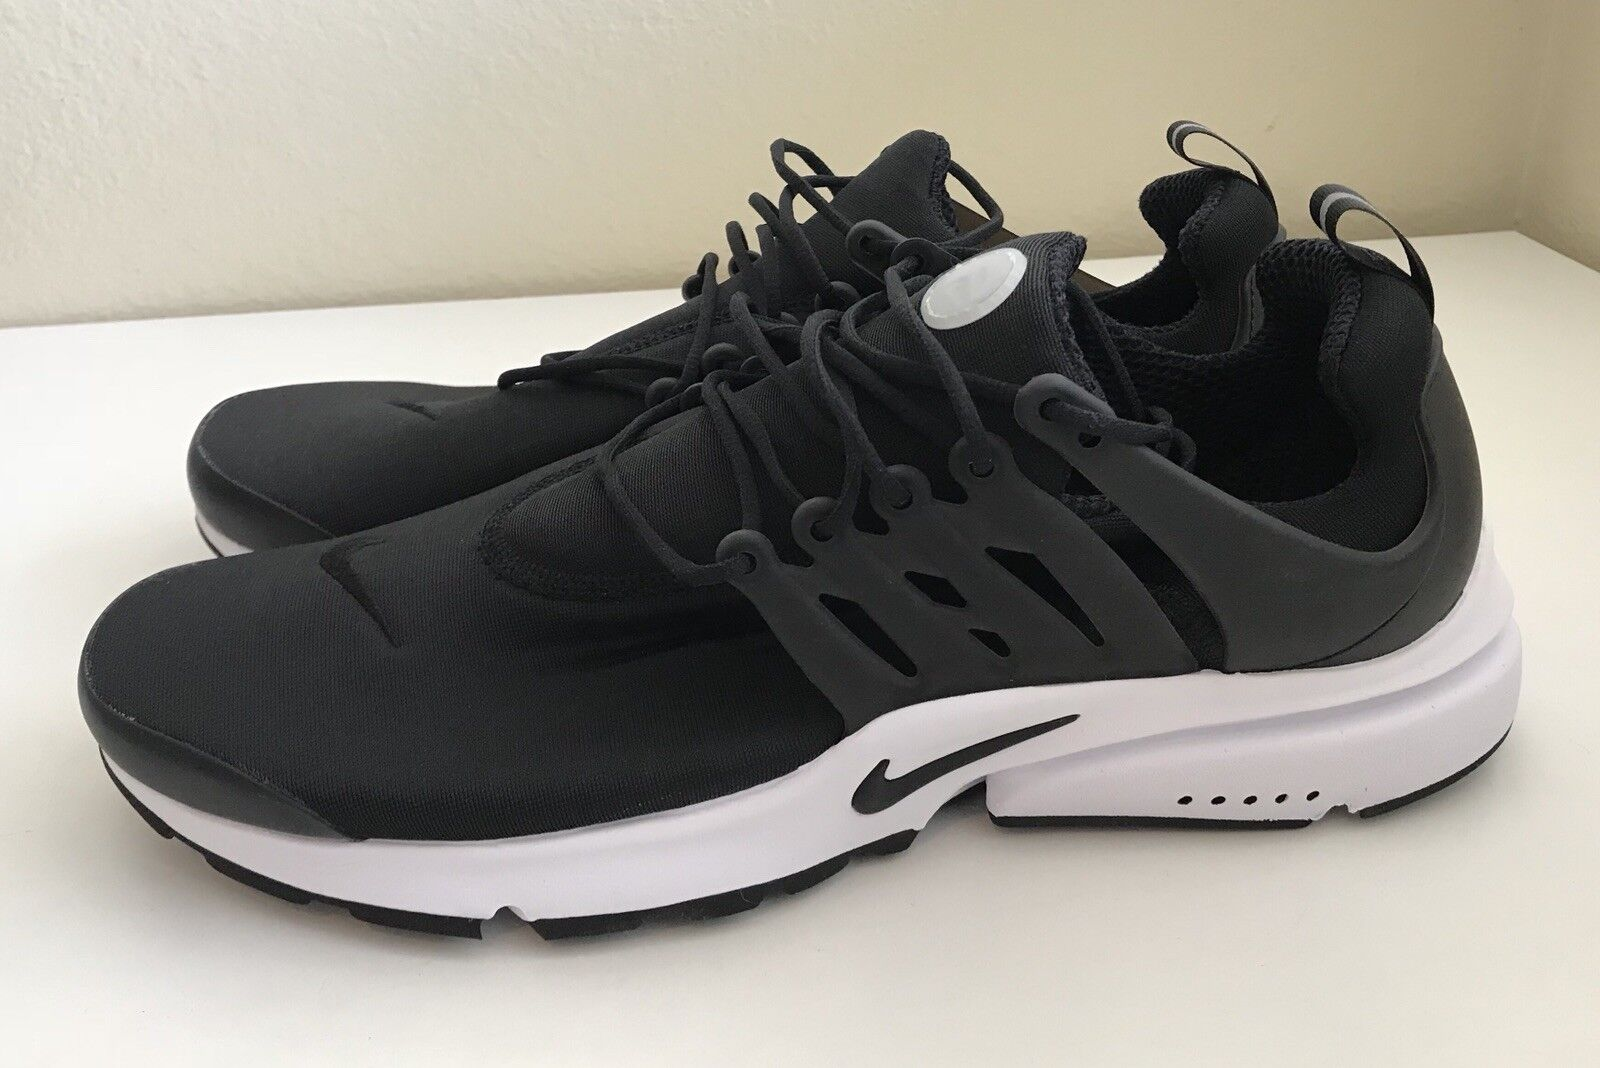 Nike Air Presto Essential Black White Running Mens Sz 14 Trainers Running White Shoes NEW 5f438d